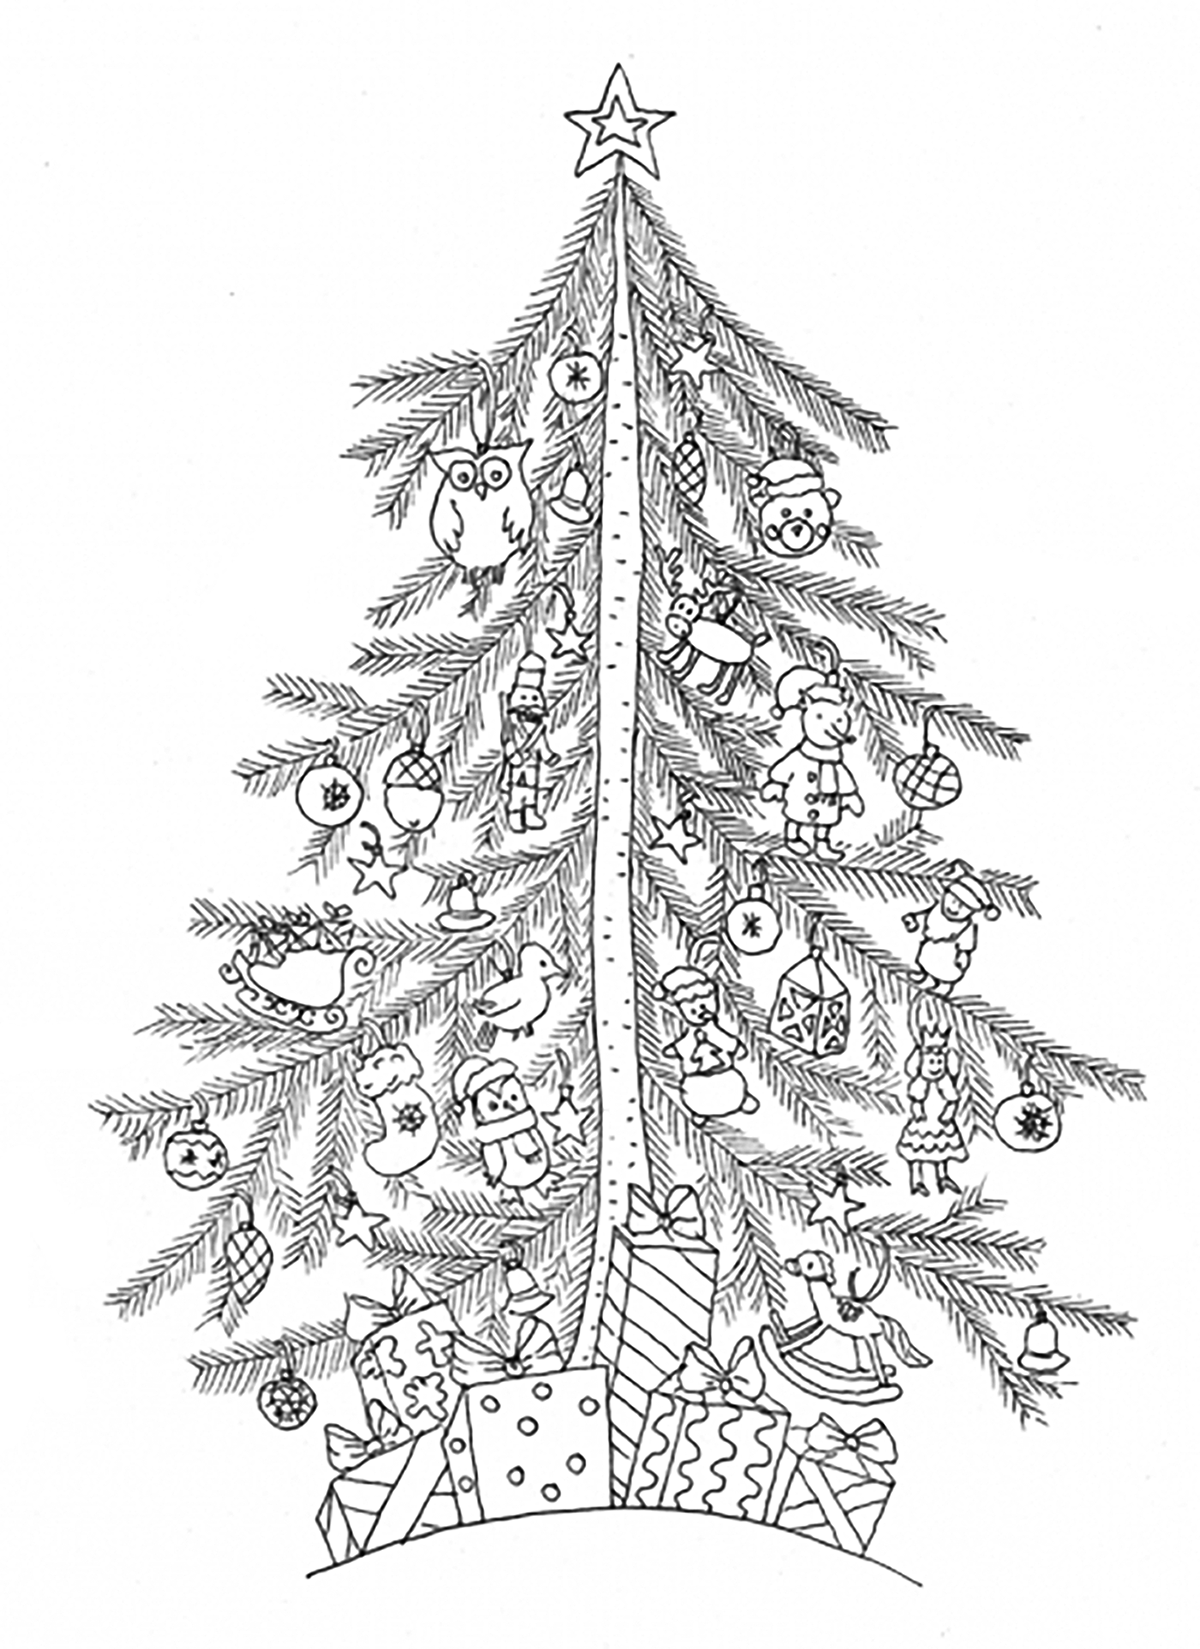 christmas tree coloring page printable craftsactvities and worksheets for preschooltoddler and printable page christmas tree coloring